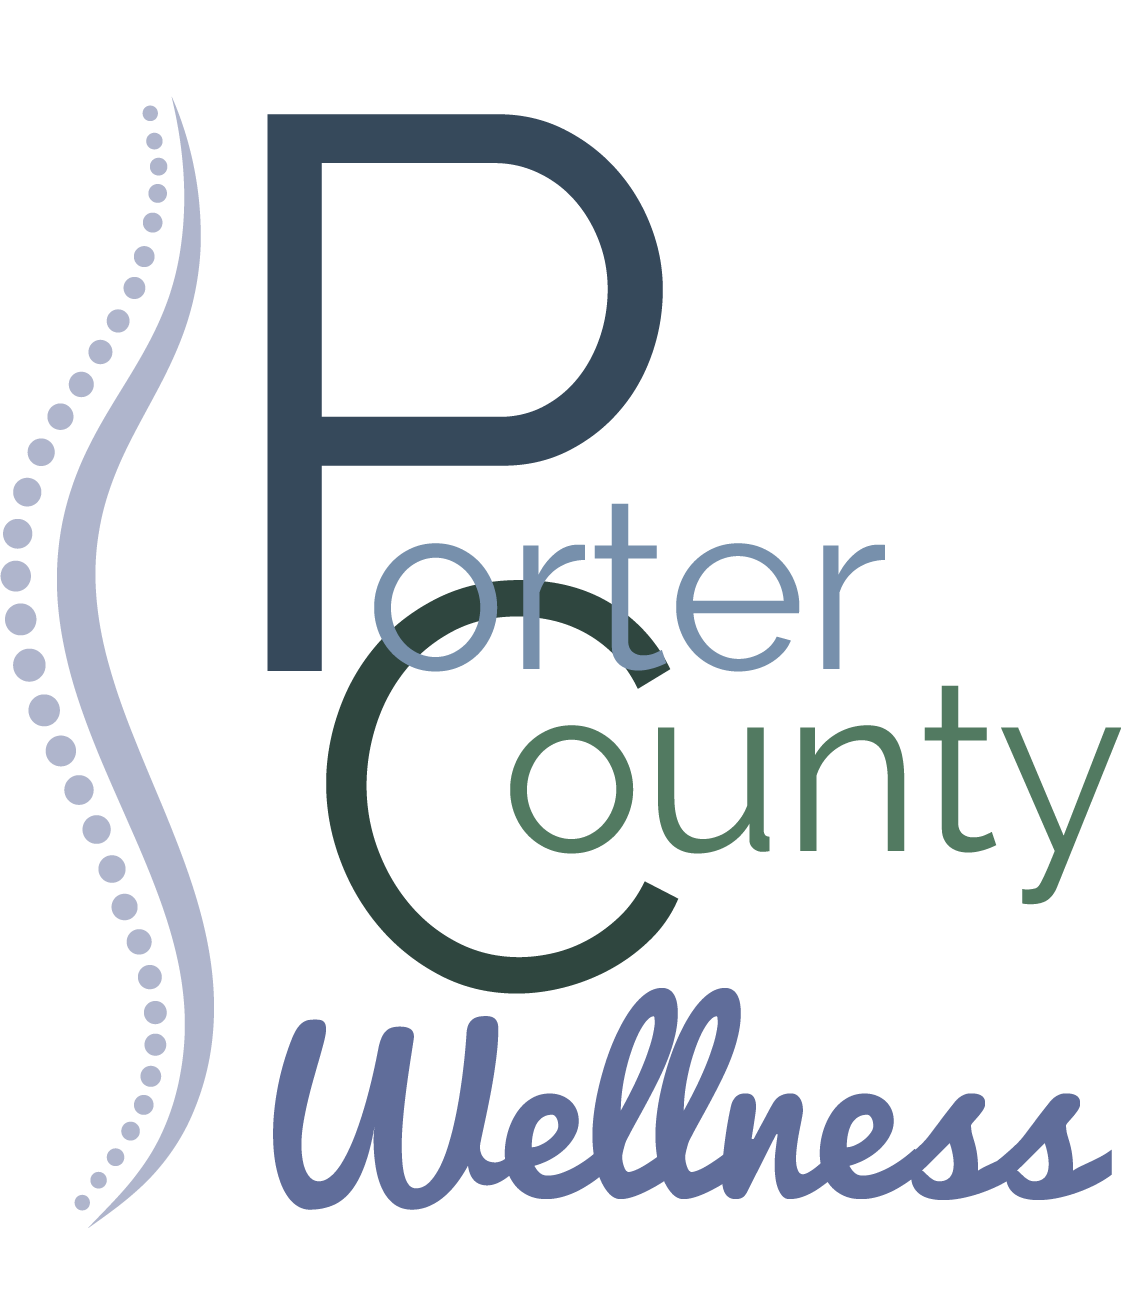 Porter County Wellness